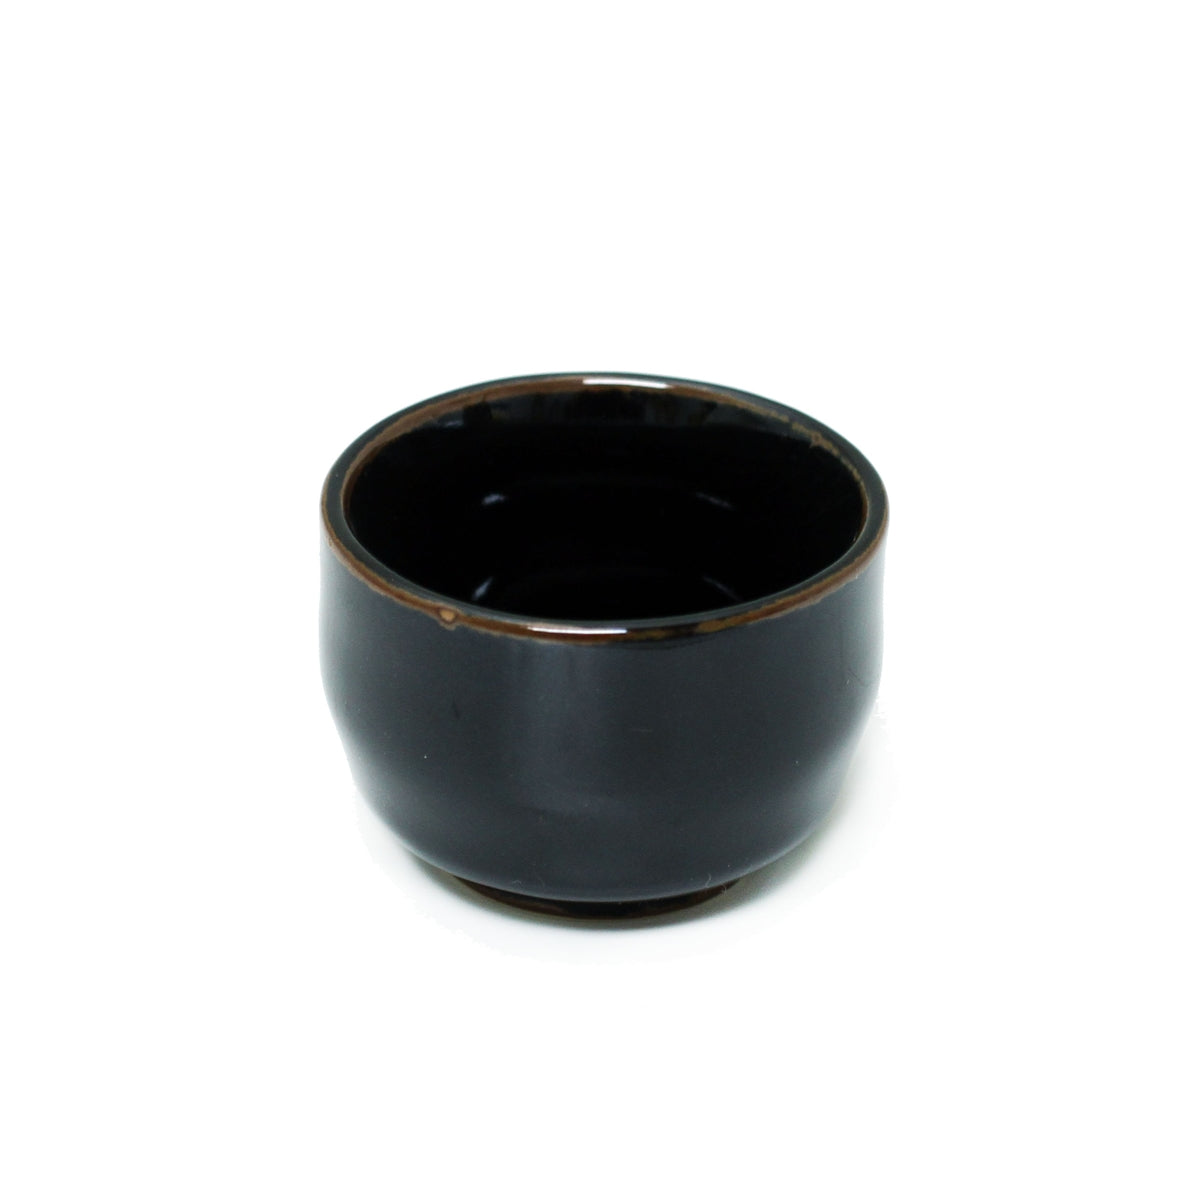 Tenmoku Glazed Black Ceramic Sake Cup 2 fl oz